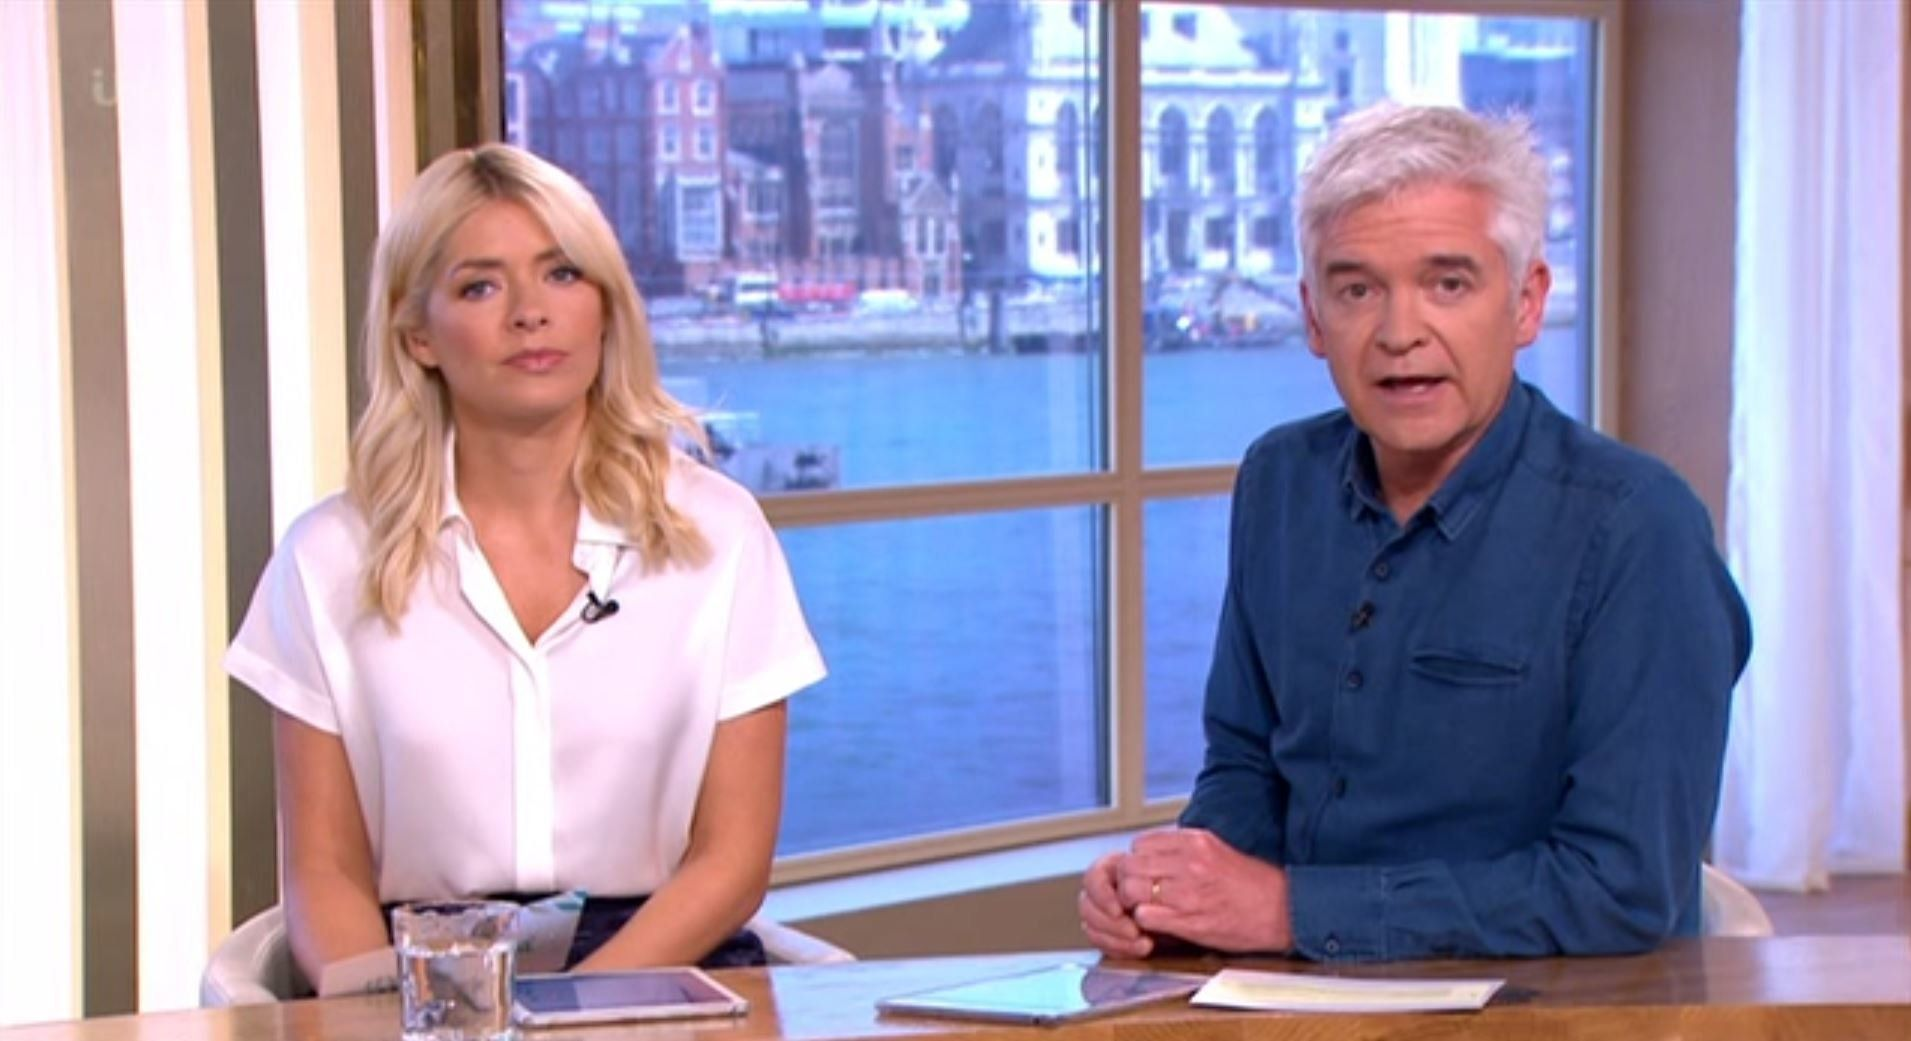 Holly Willoughby And Phillip Schofield Send Best Wishes To Ant McPartlin Following Rehab Admission